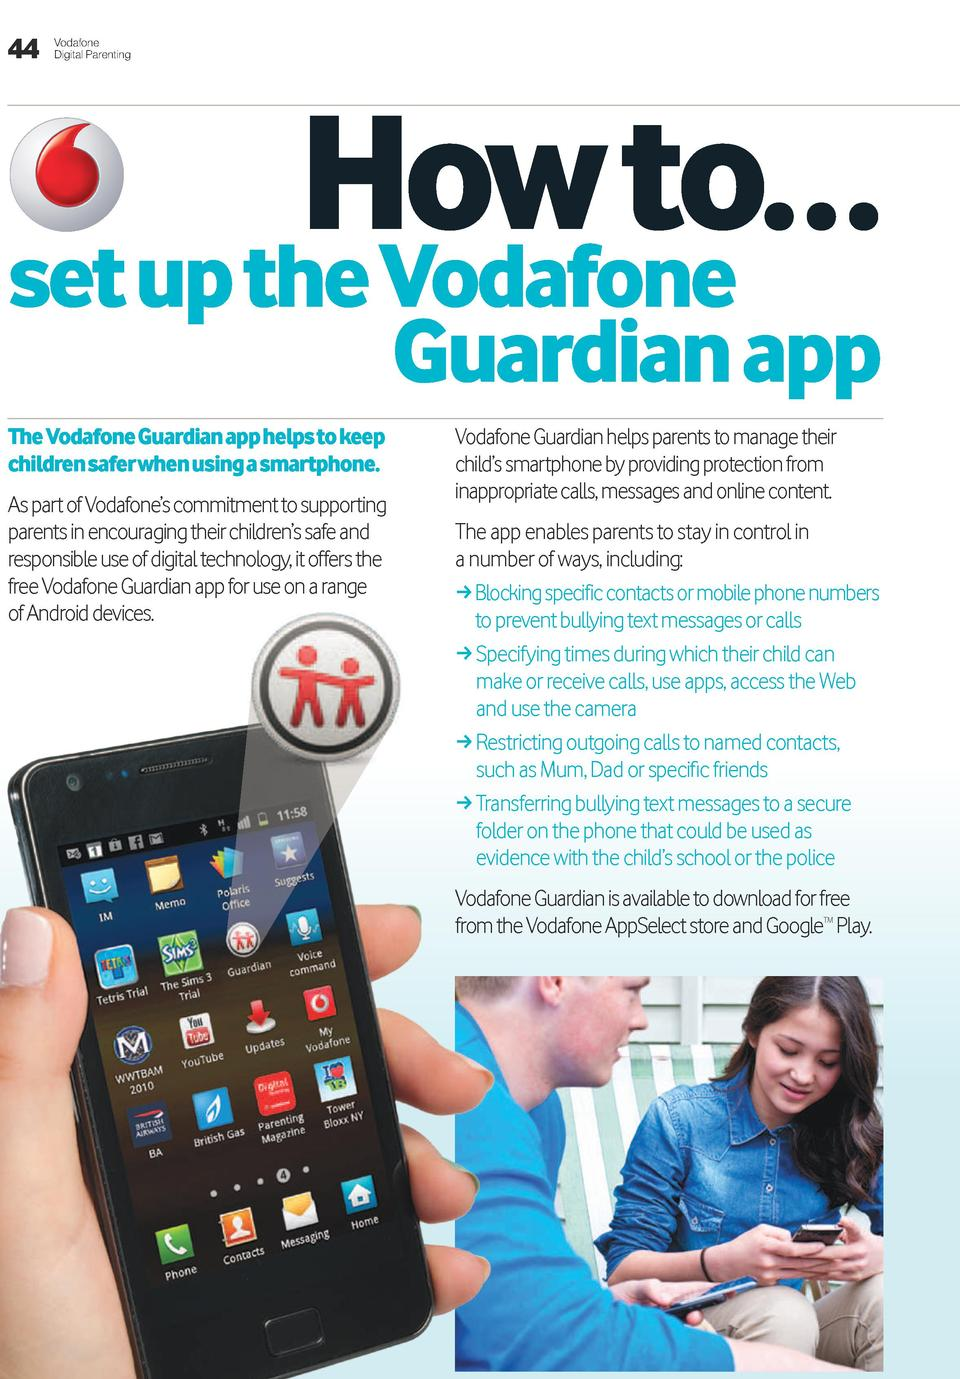 44  Vodafone Digital Parenting  how to    set up the Vodafone Guardian app  The Vodafone Guardian app helps to keep childr...